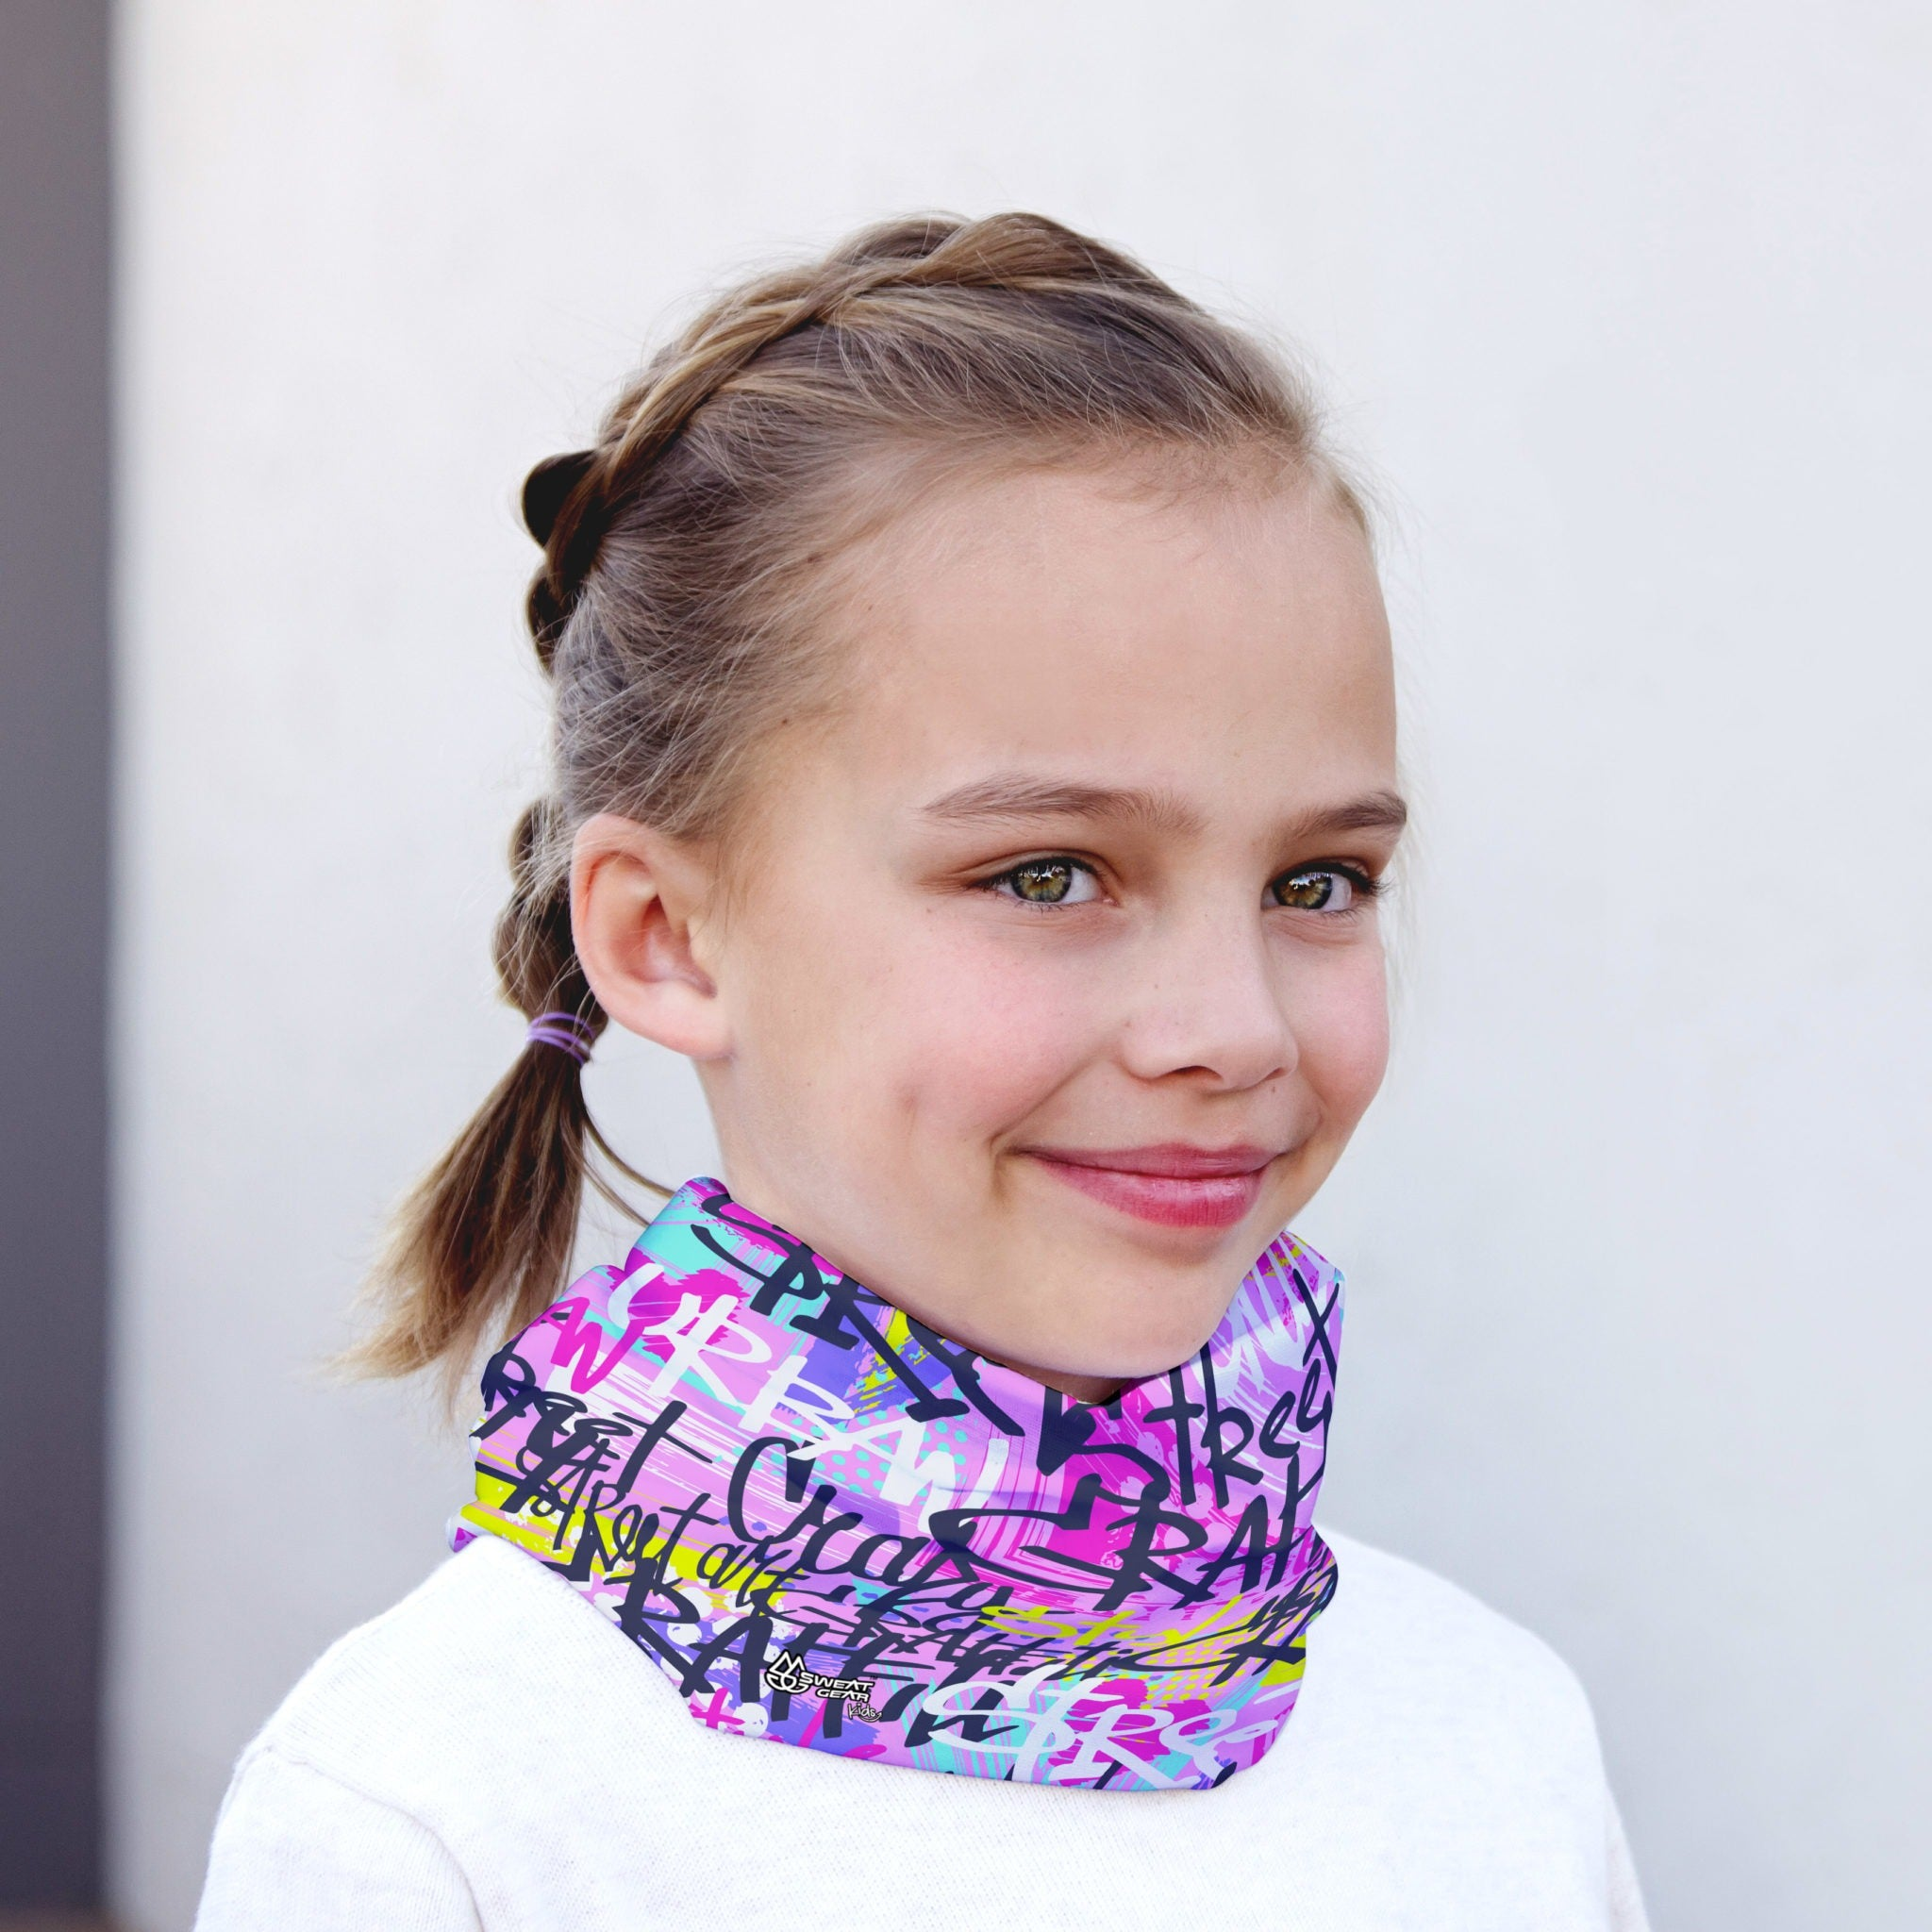 Graffiti Girl Buff (Sweatgear.Kids)